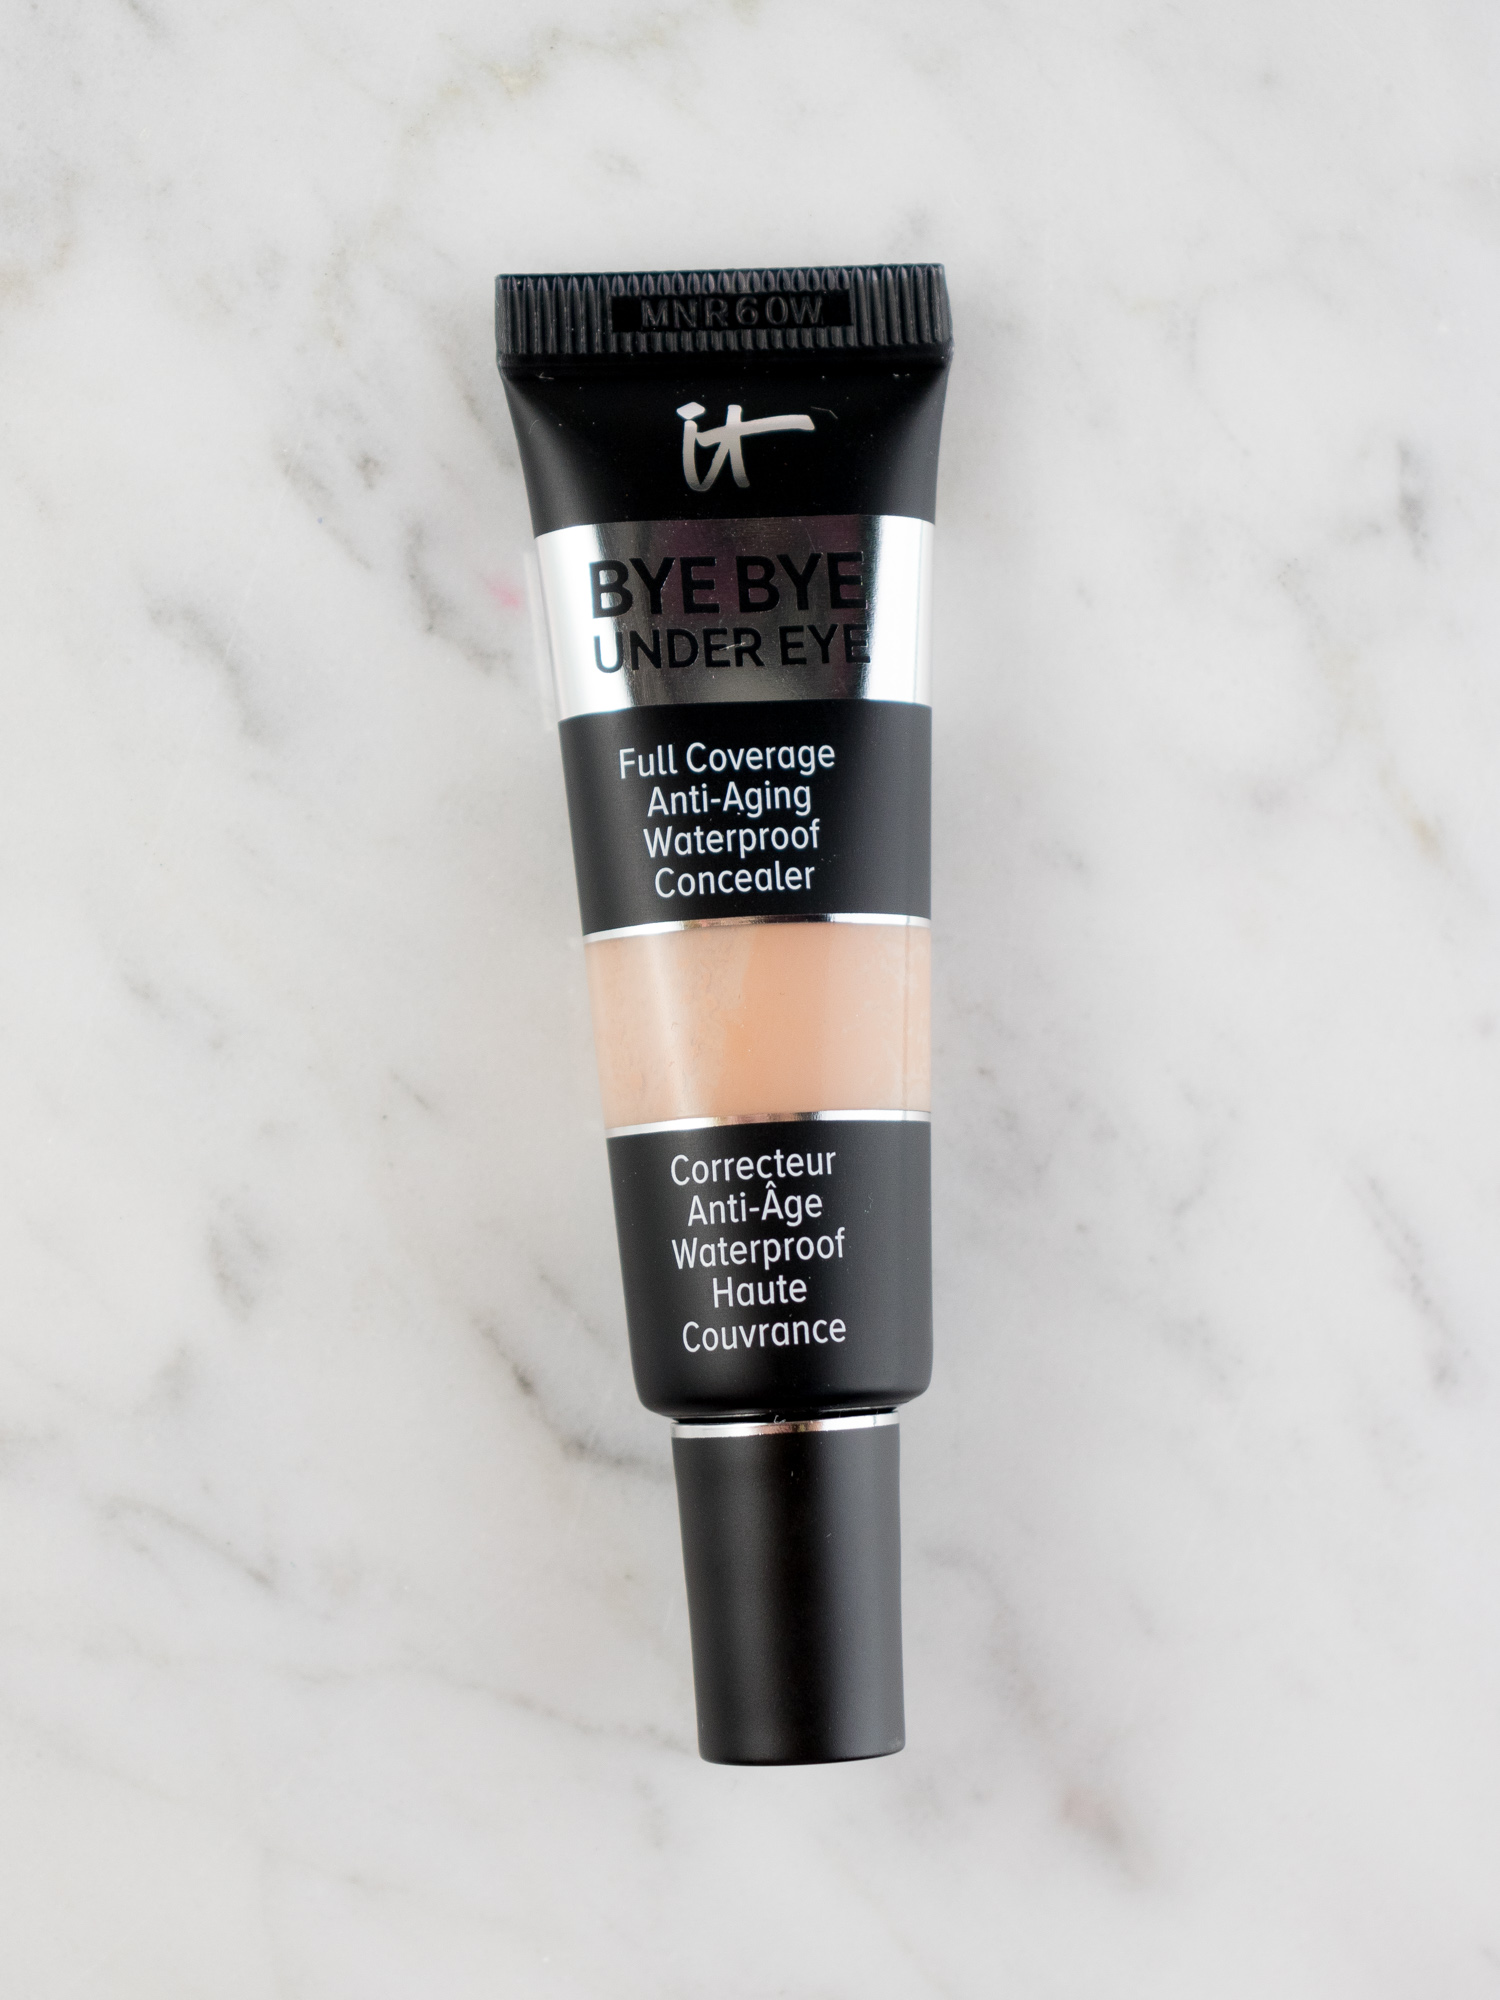 IT Cosmetics Bye Bye Under Eye — Now in 48 Shades